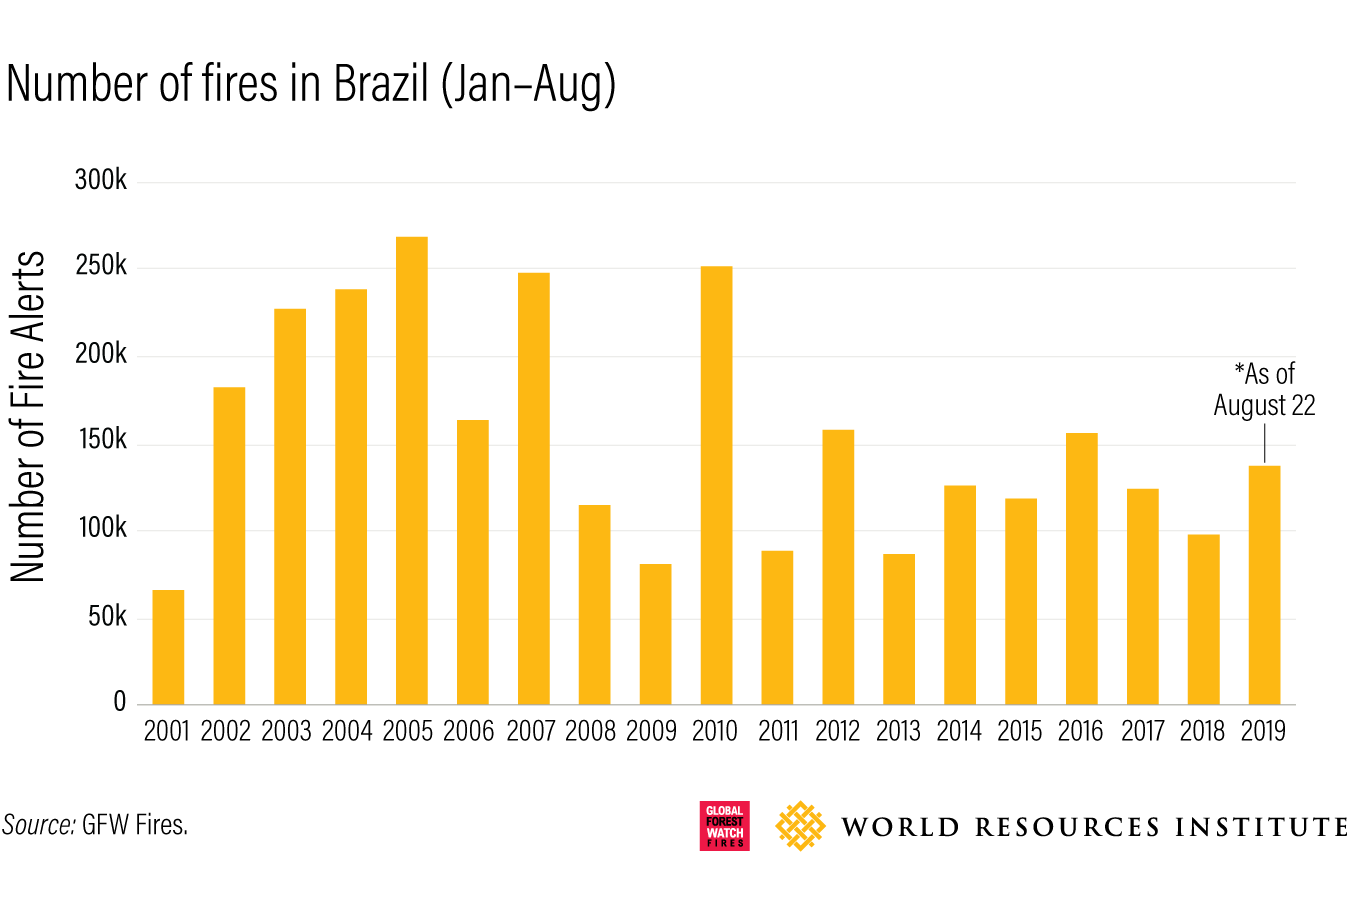 Number of fires in brazil, Jan-Aug